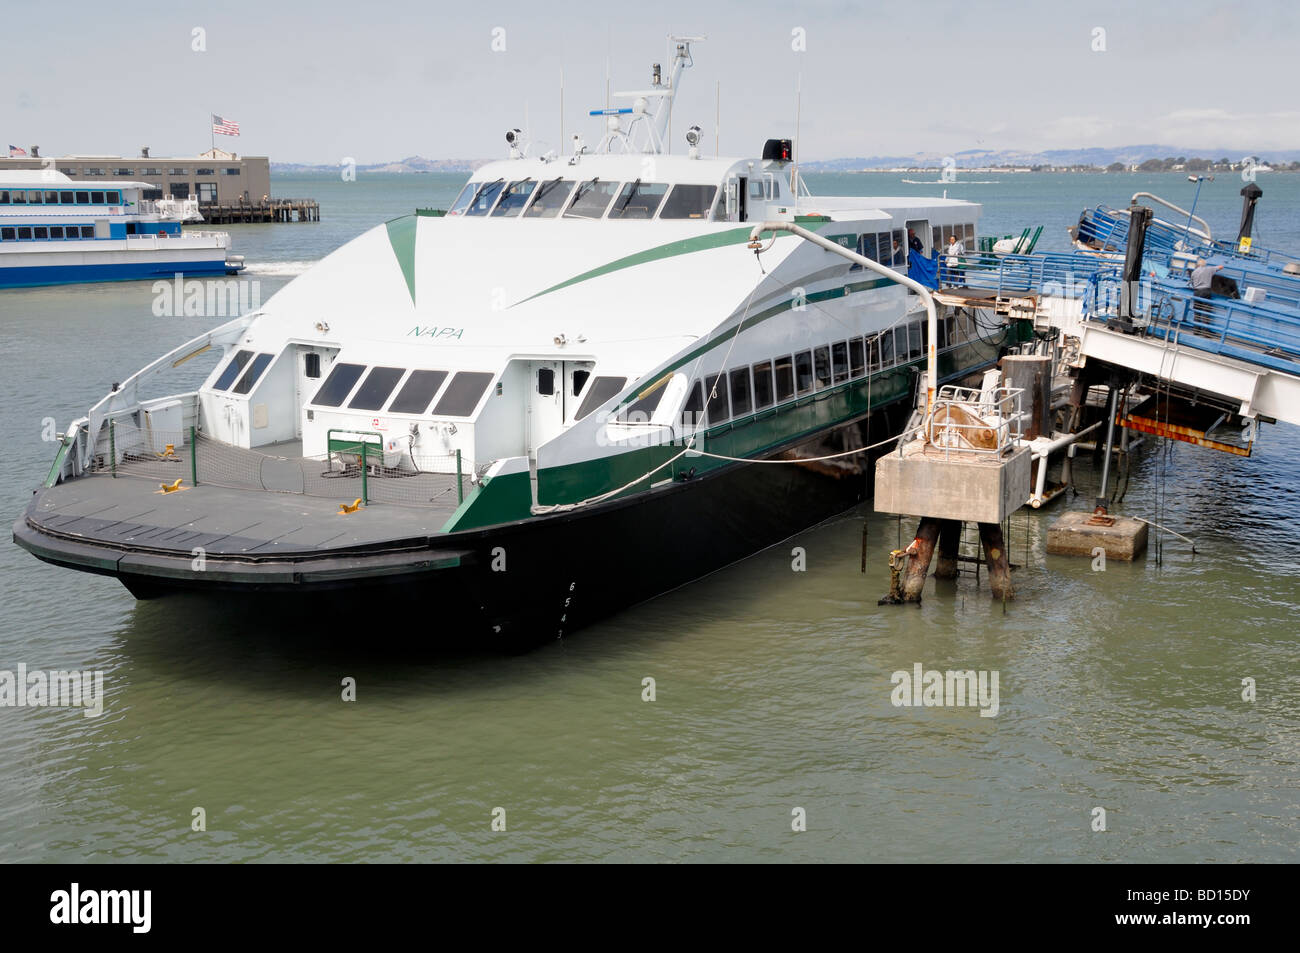 Modern catamaran ferry boat prepares for passengers to embark - Stock Image